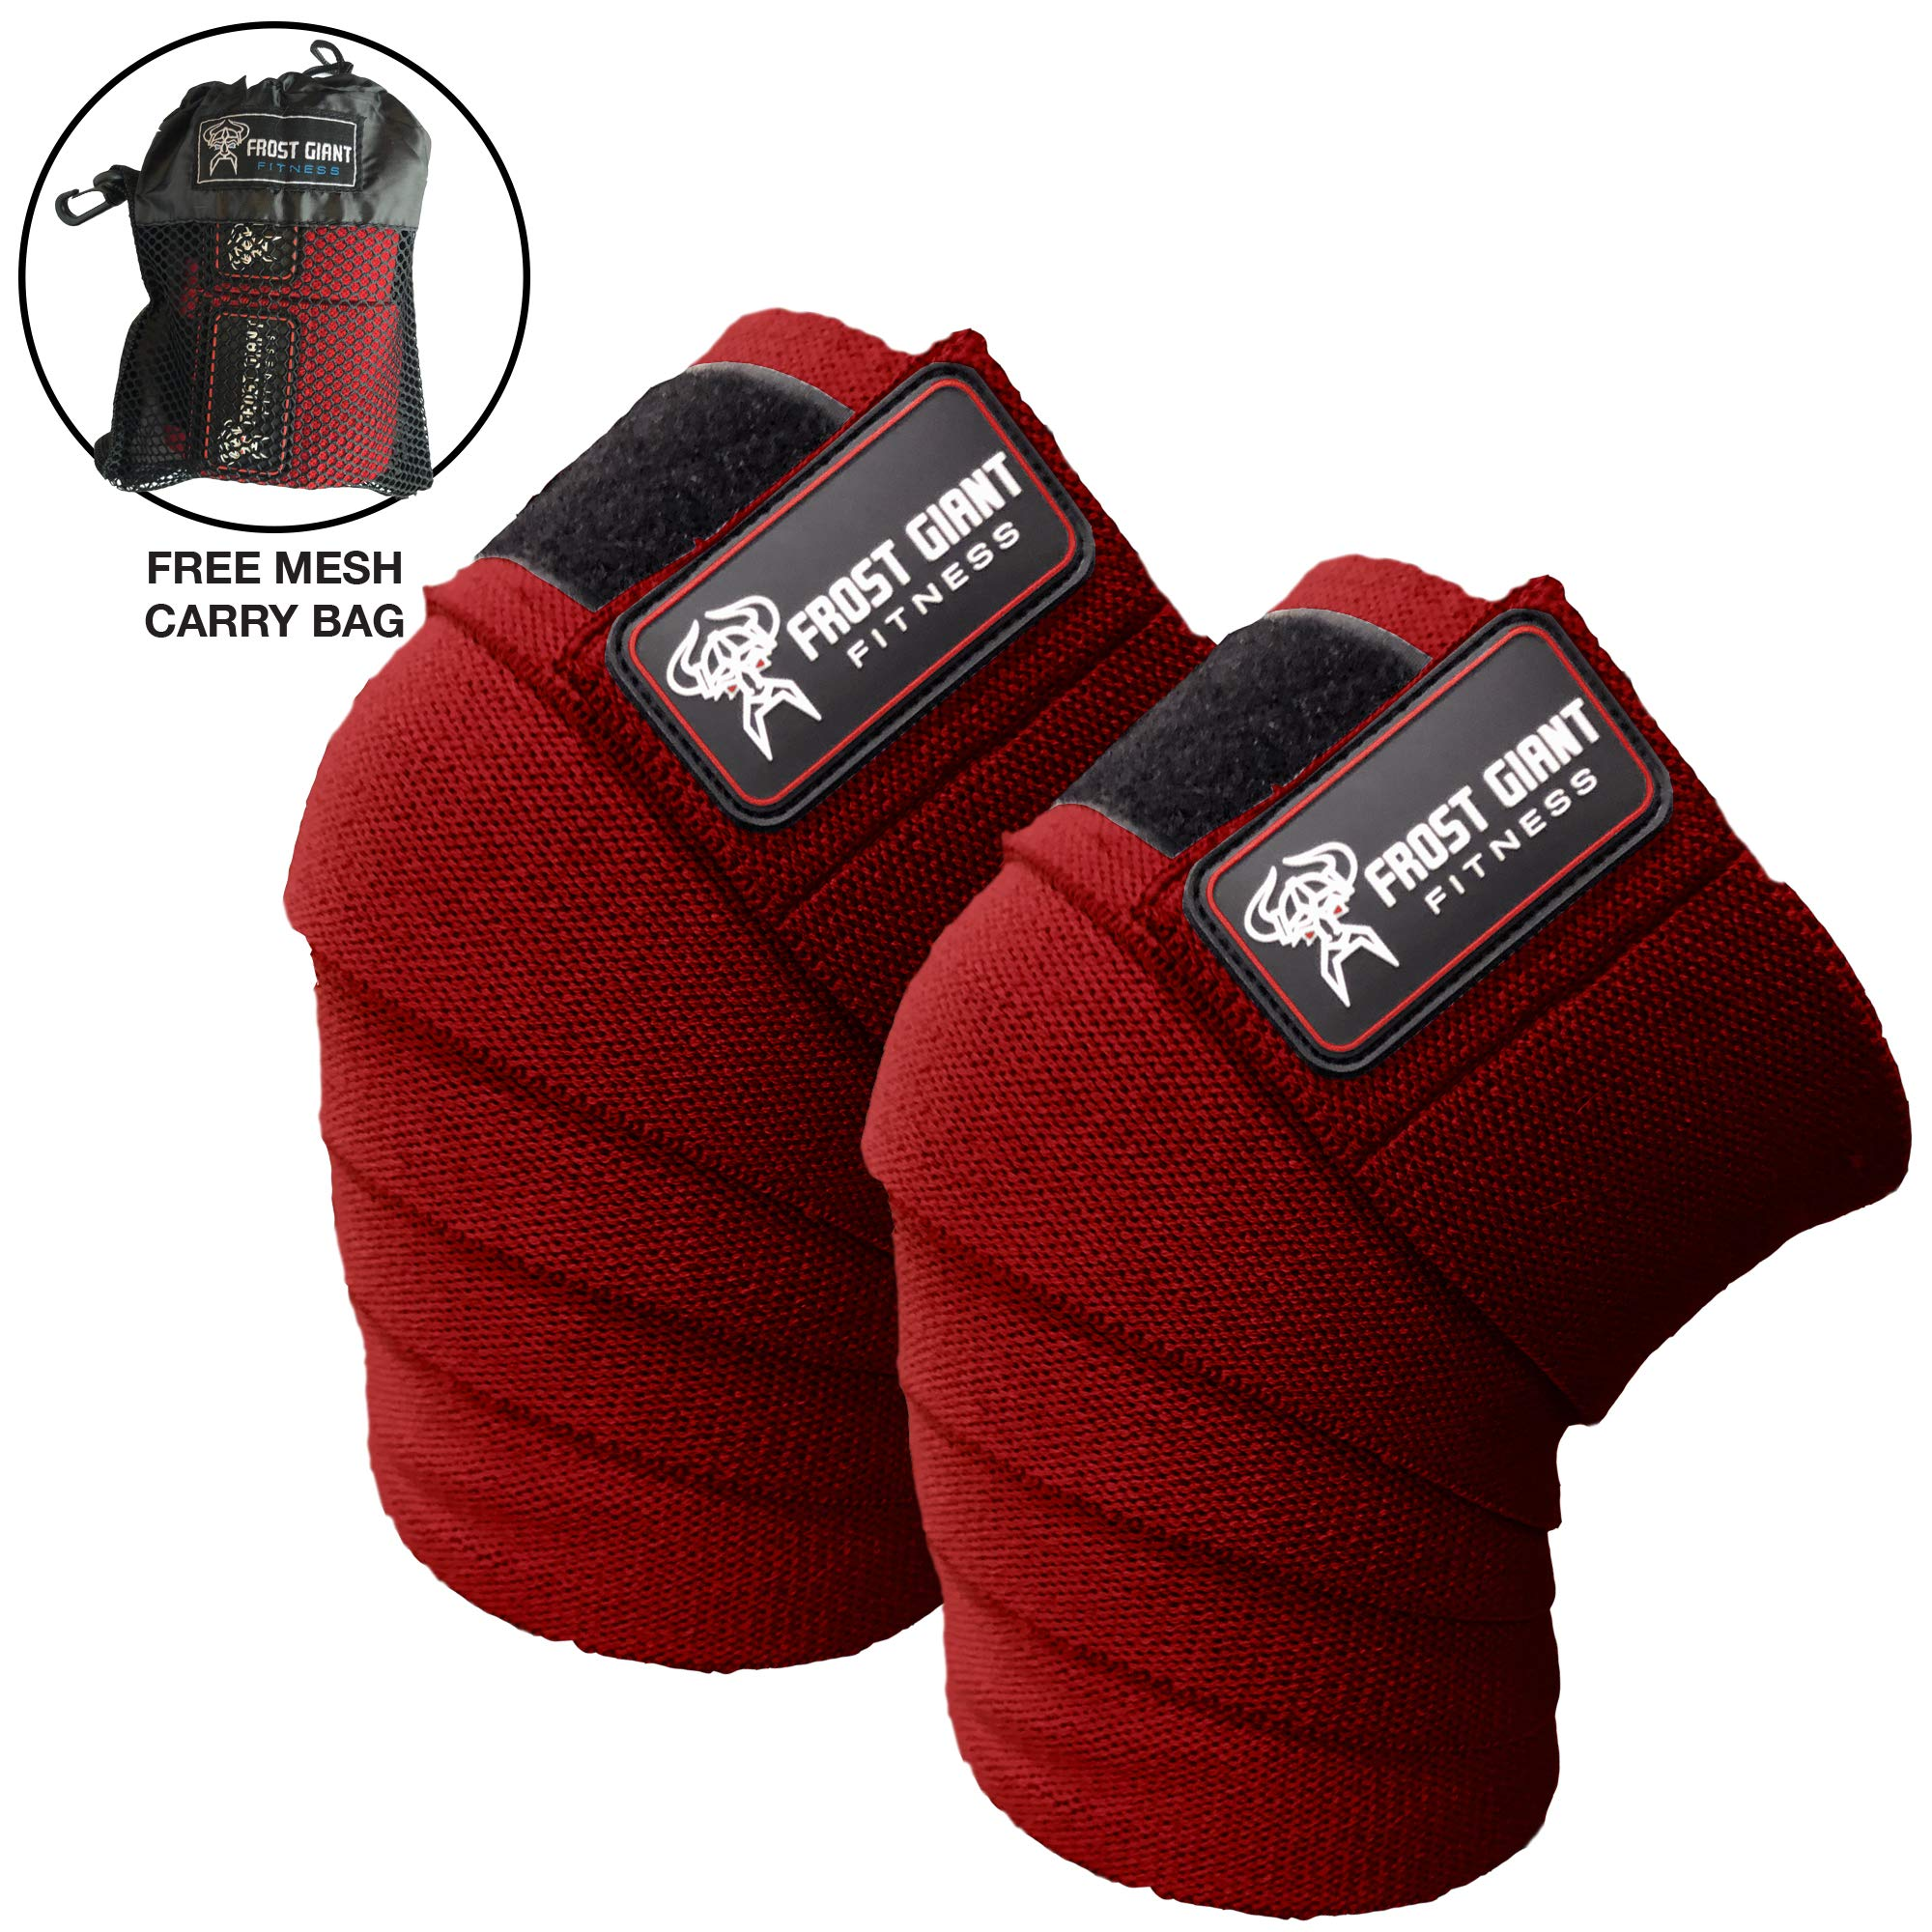 Frost Giant Fitness: 80'' Knee Wraps Set for Weightlifting, Bodybuilding, Lifting and Gym Workouts - Heavy Duty Exercising Knee Compression & Elastic Support for Men & Women. Includes Carry Bag! Red